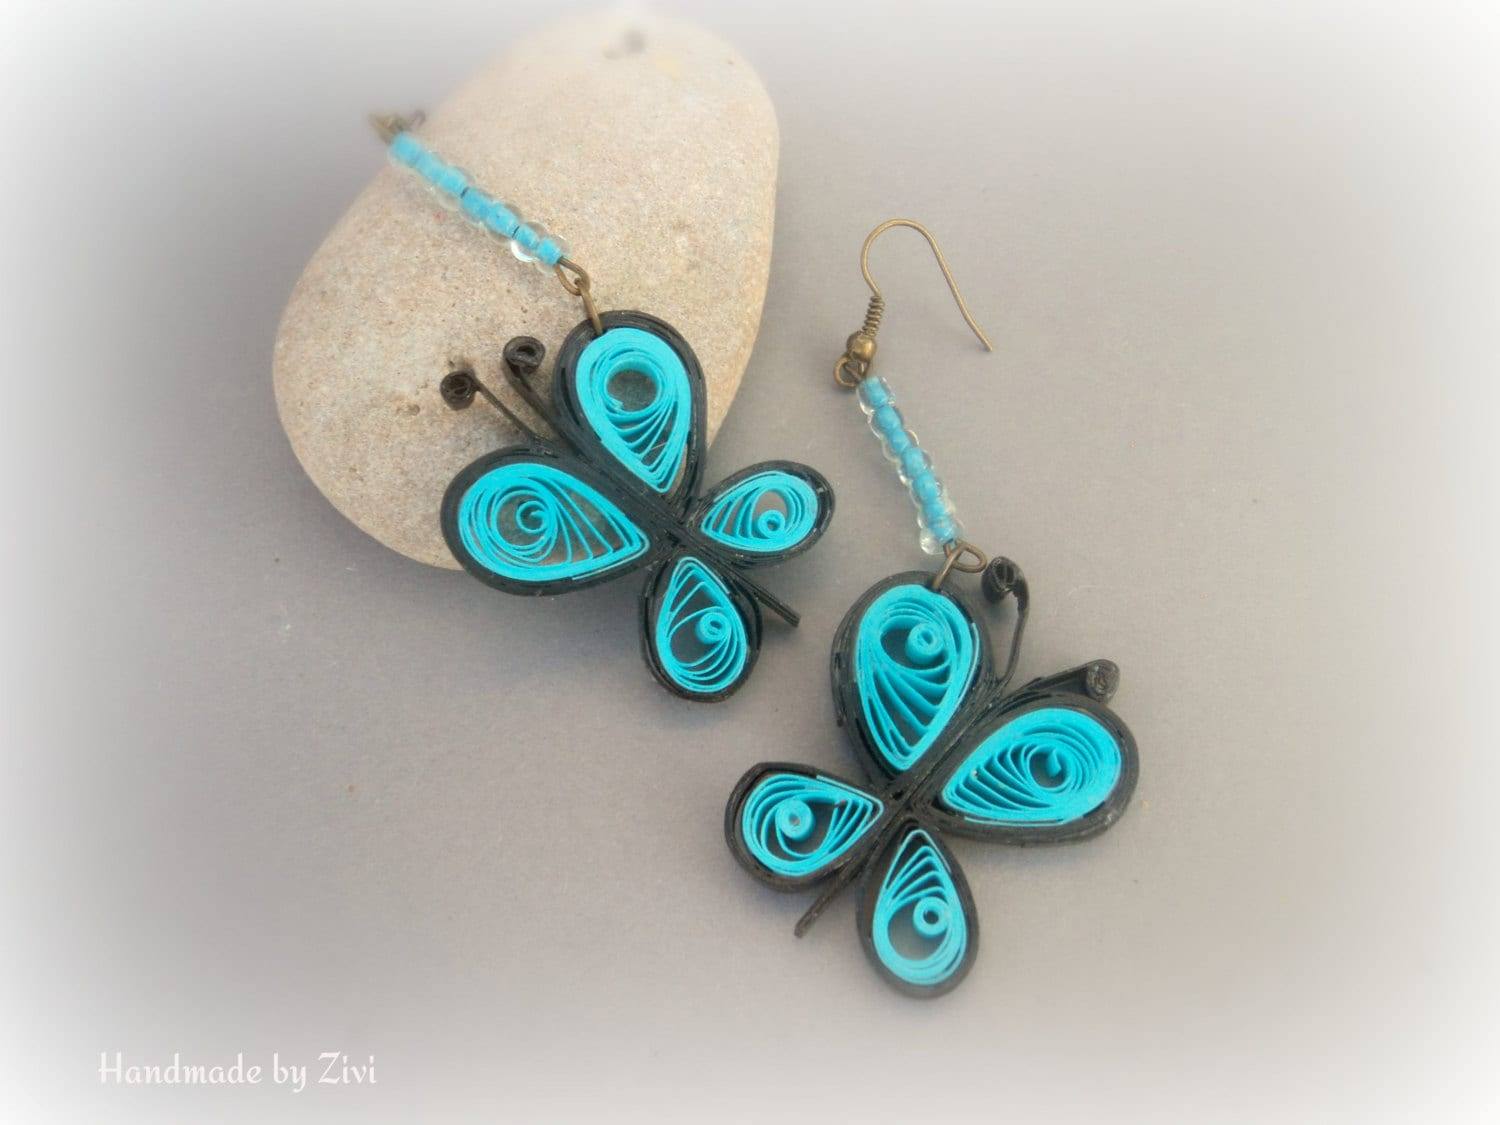 Quilling Earrings Designs Latest : 15 Simple and Latest Paper Quilling Earrings Designs